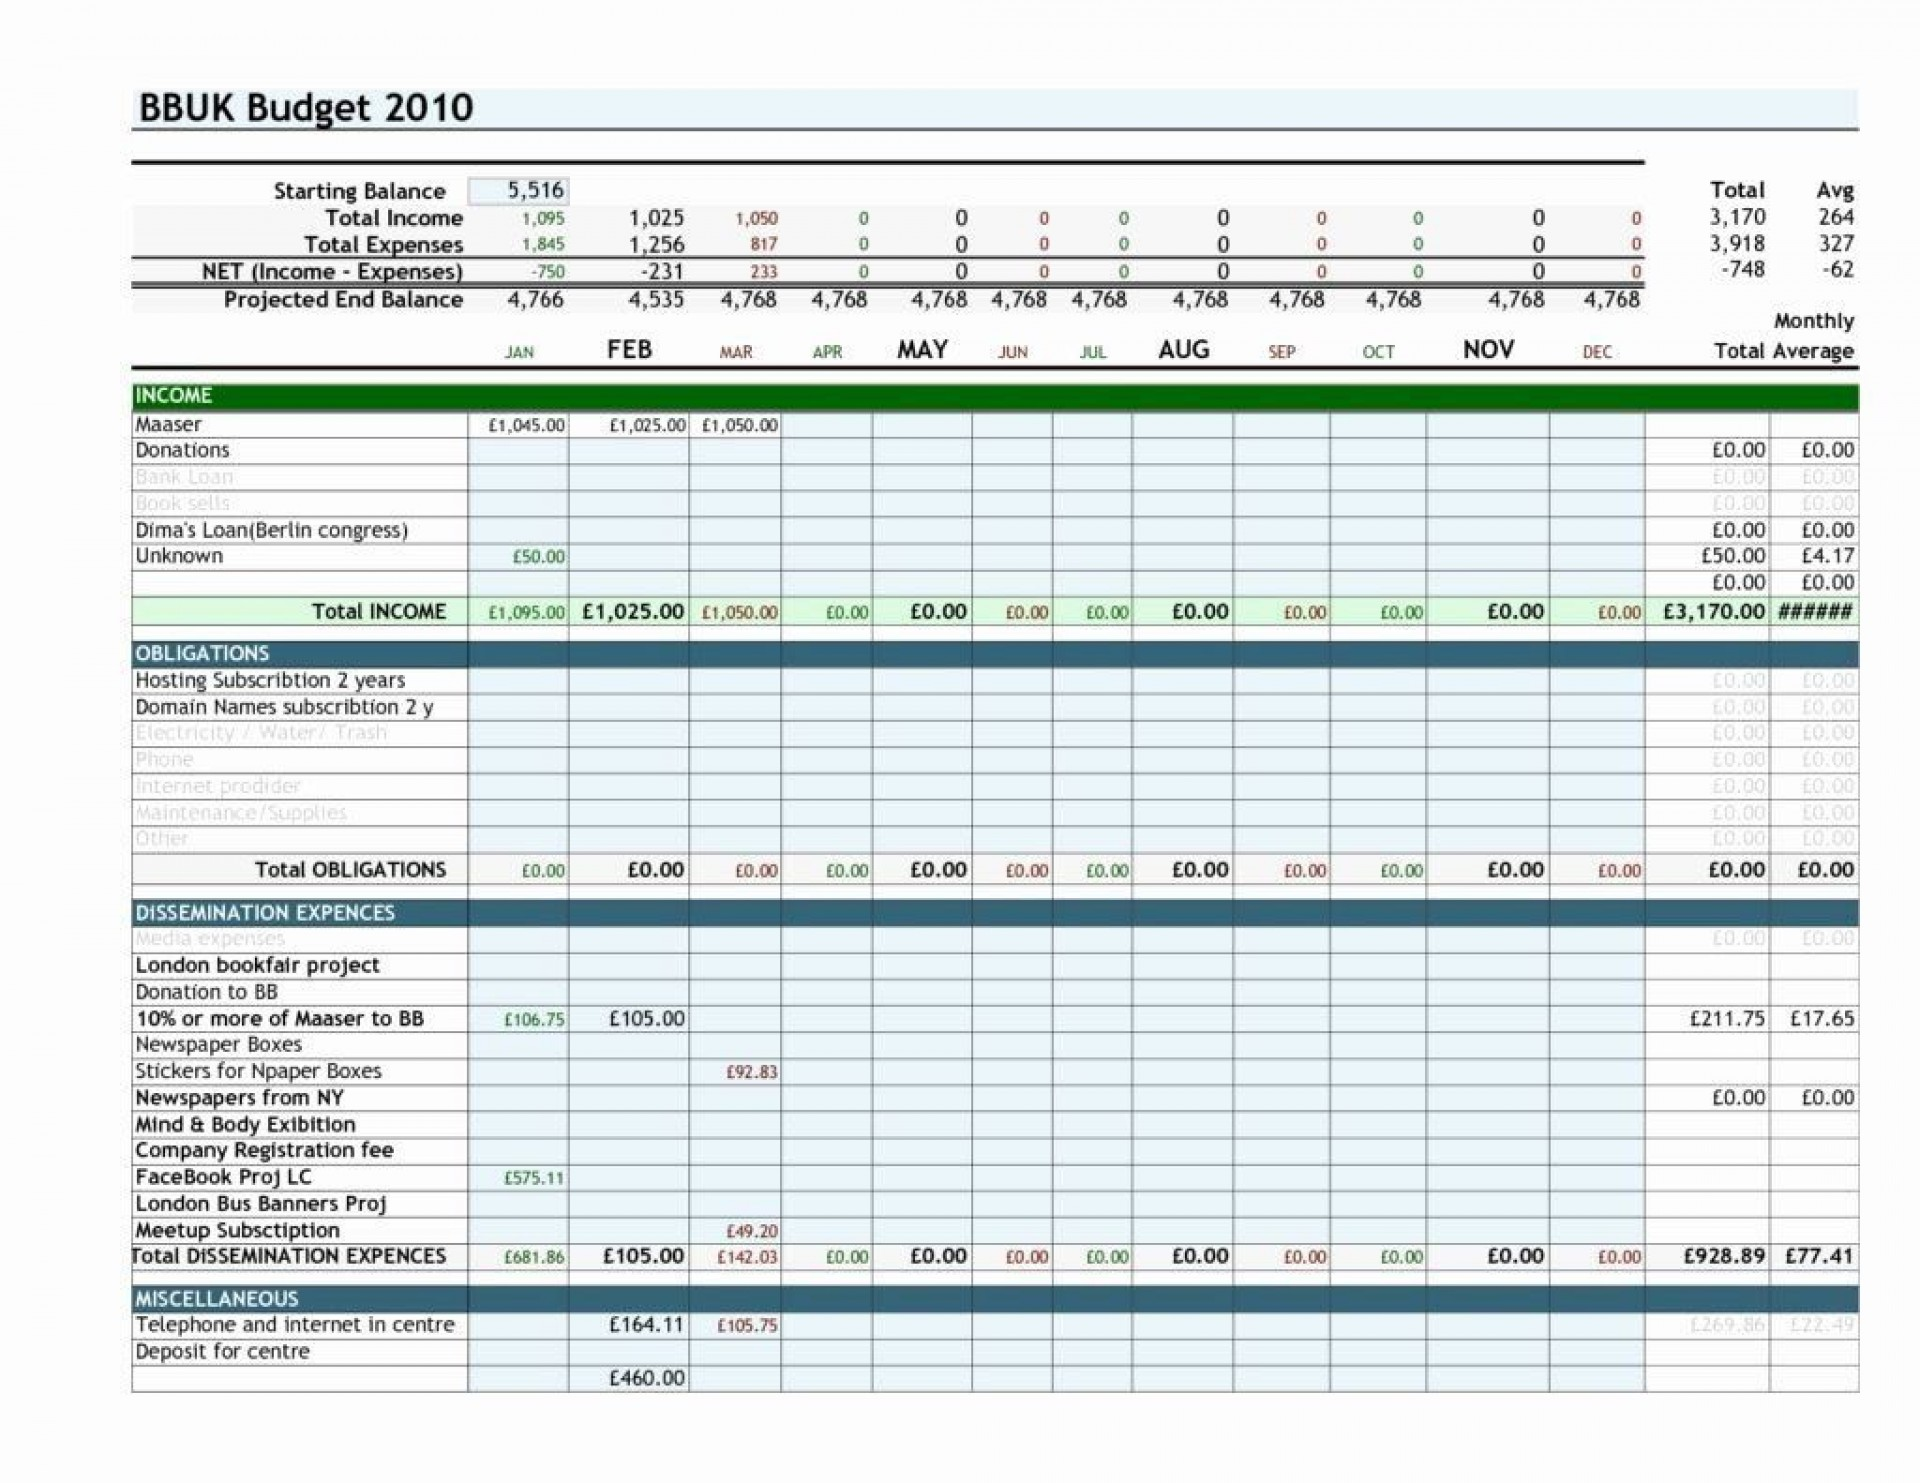 001 Surprising Personal Budget Spreadsheet Template For Mac High Def 1920